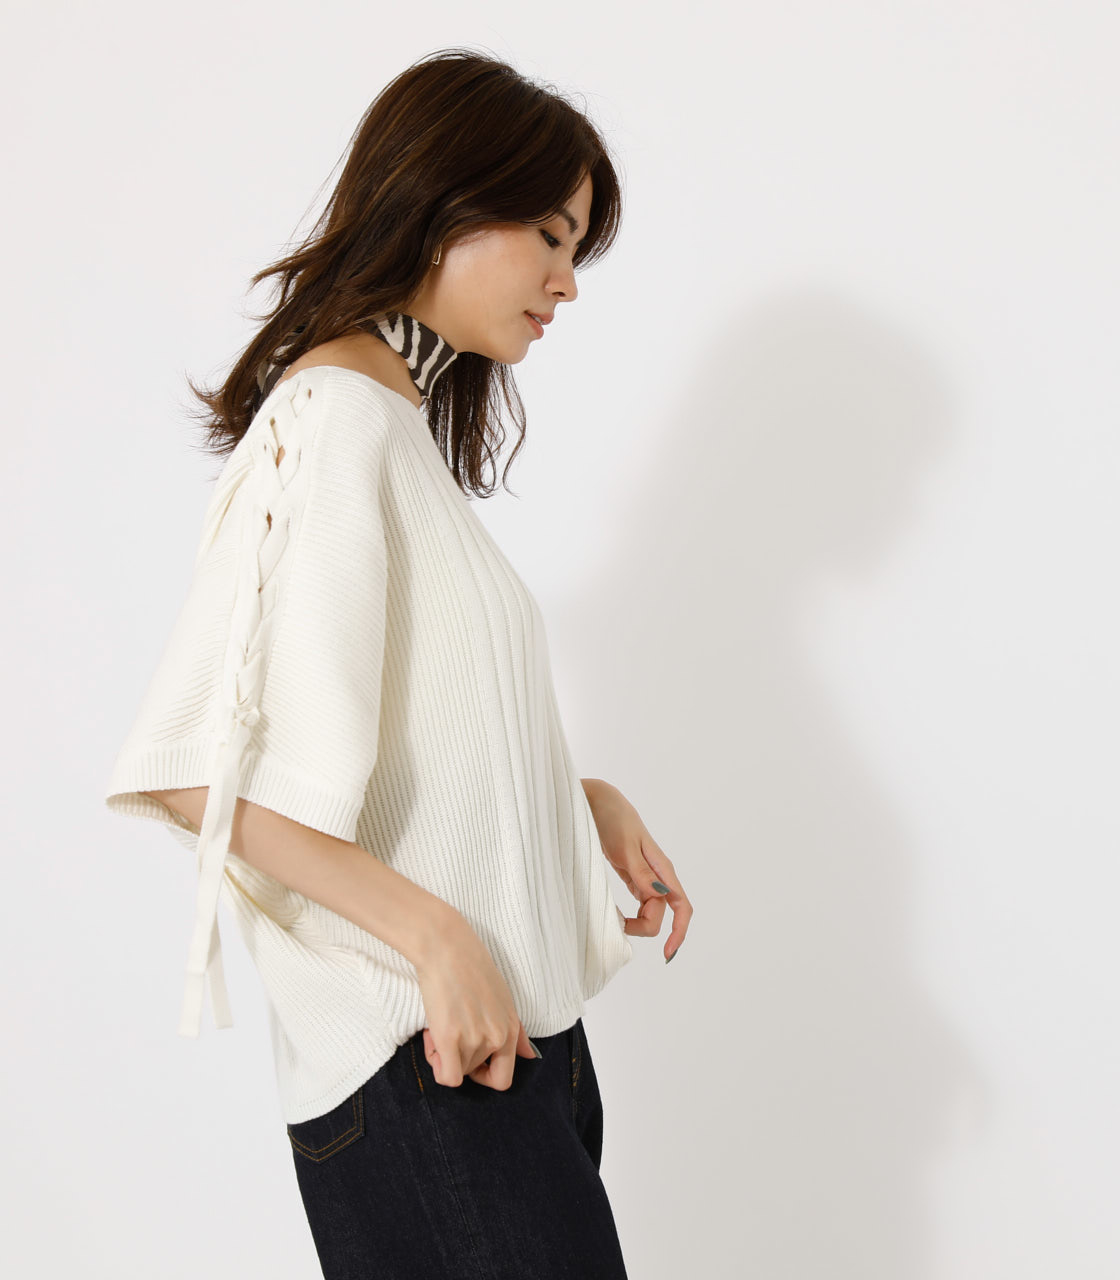 2WAY SHOULDER LACE-UP KNIT/2WAYショルダーレースアップニット 詳細画像 O/WHT 2